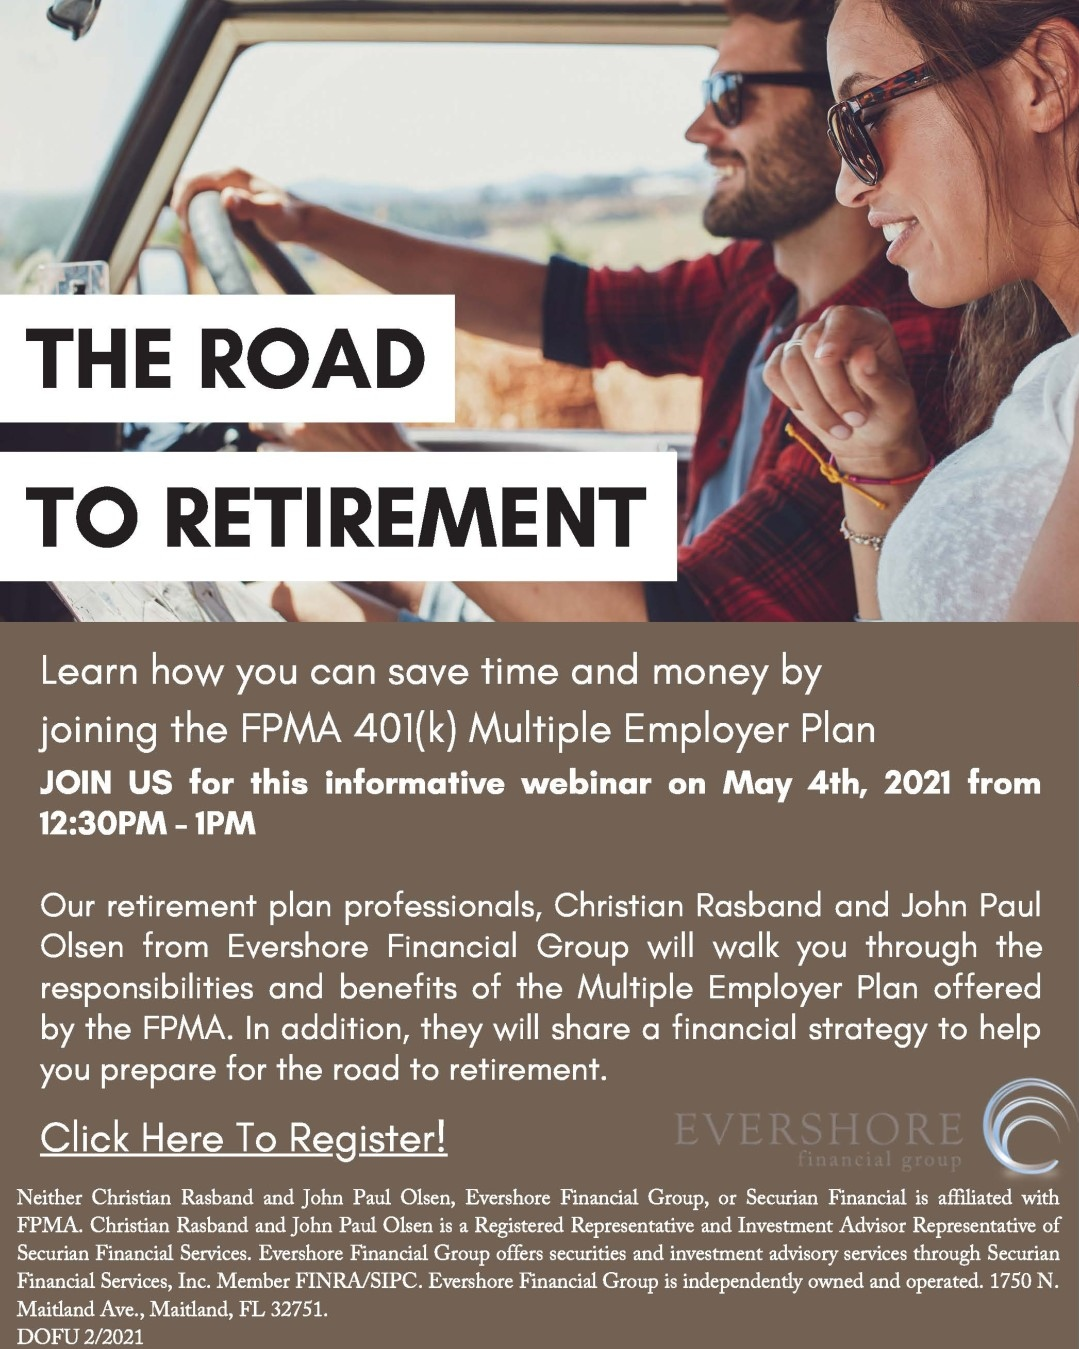 The Road to Retirement Webinar